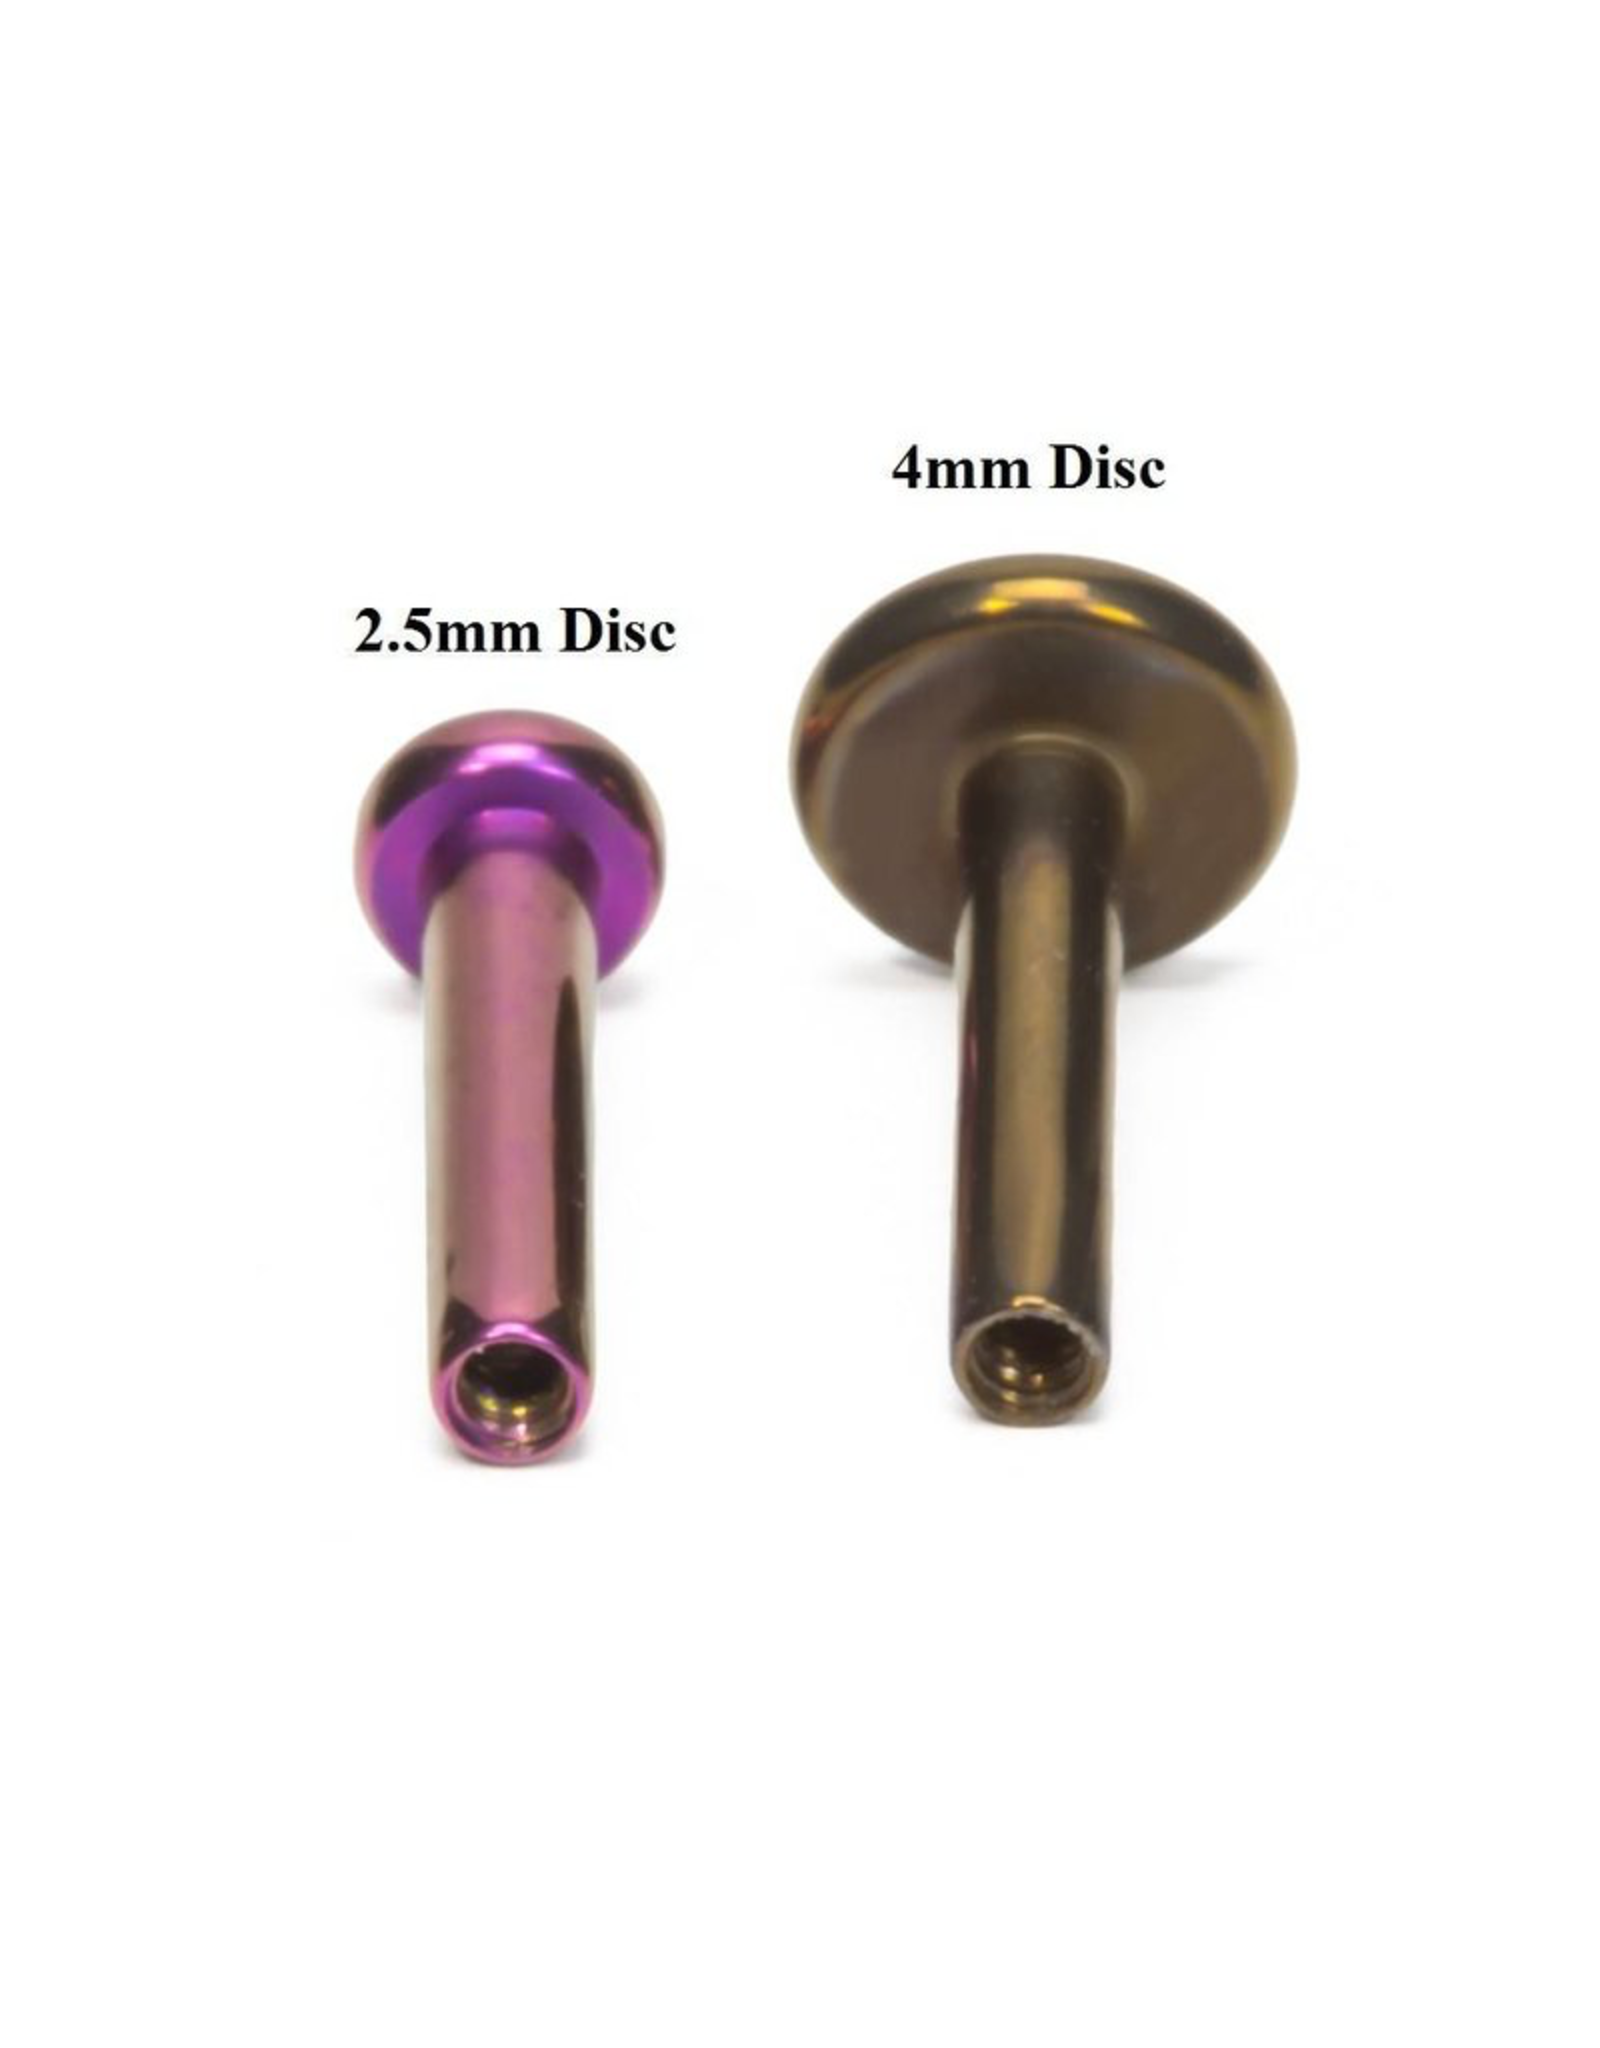 14g Titanium Threadless Flat Back Post (4mm Disk)